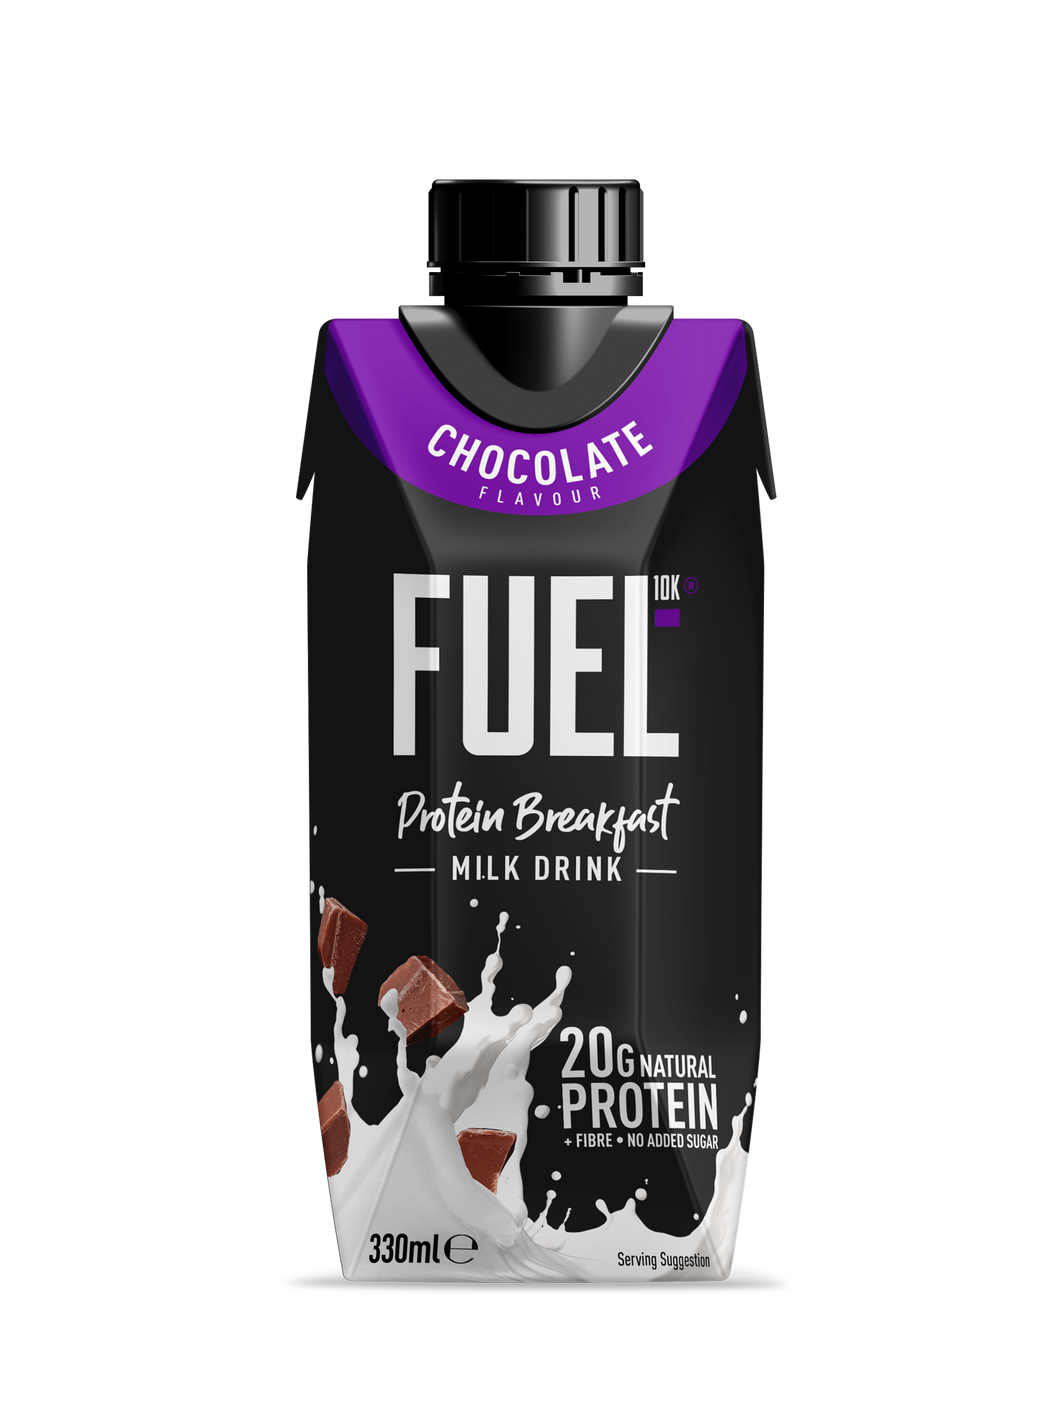 FUEL10K, High Protein Chocolate Breakfast Milk Drink, 330ml - Mighty Small